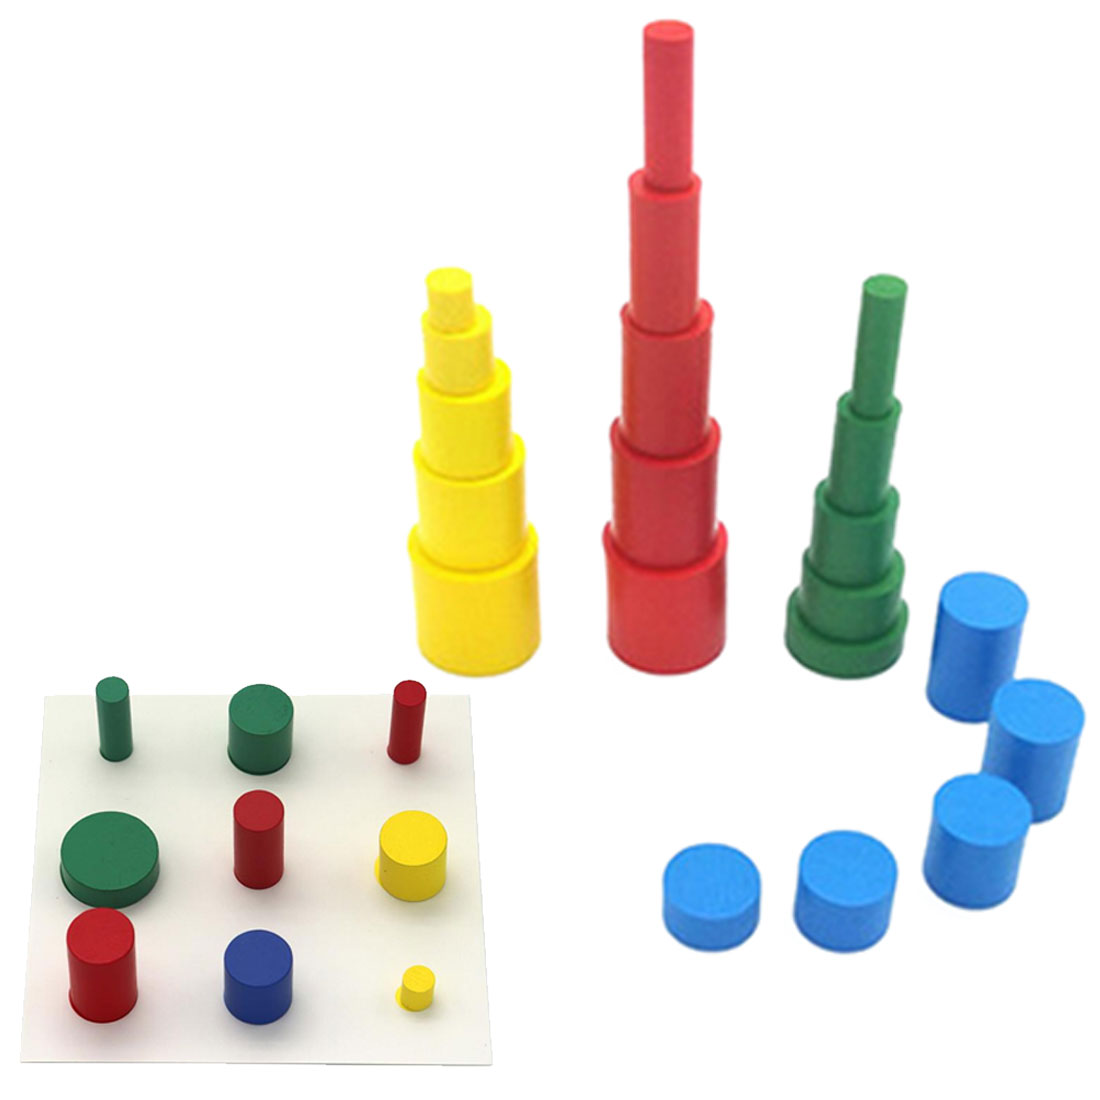 Kids Learning Toys Colorful Socket Cylinder Set Beech Wood Multicolor Blocks Early Educational Math Teaching Toys